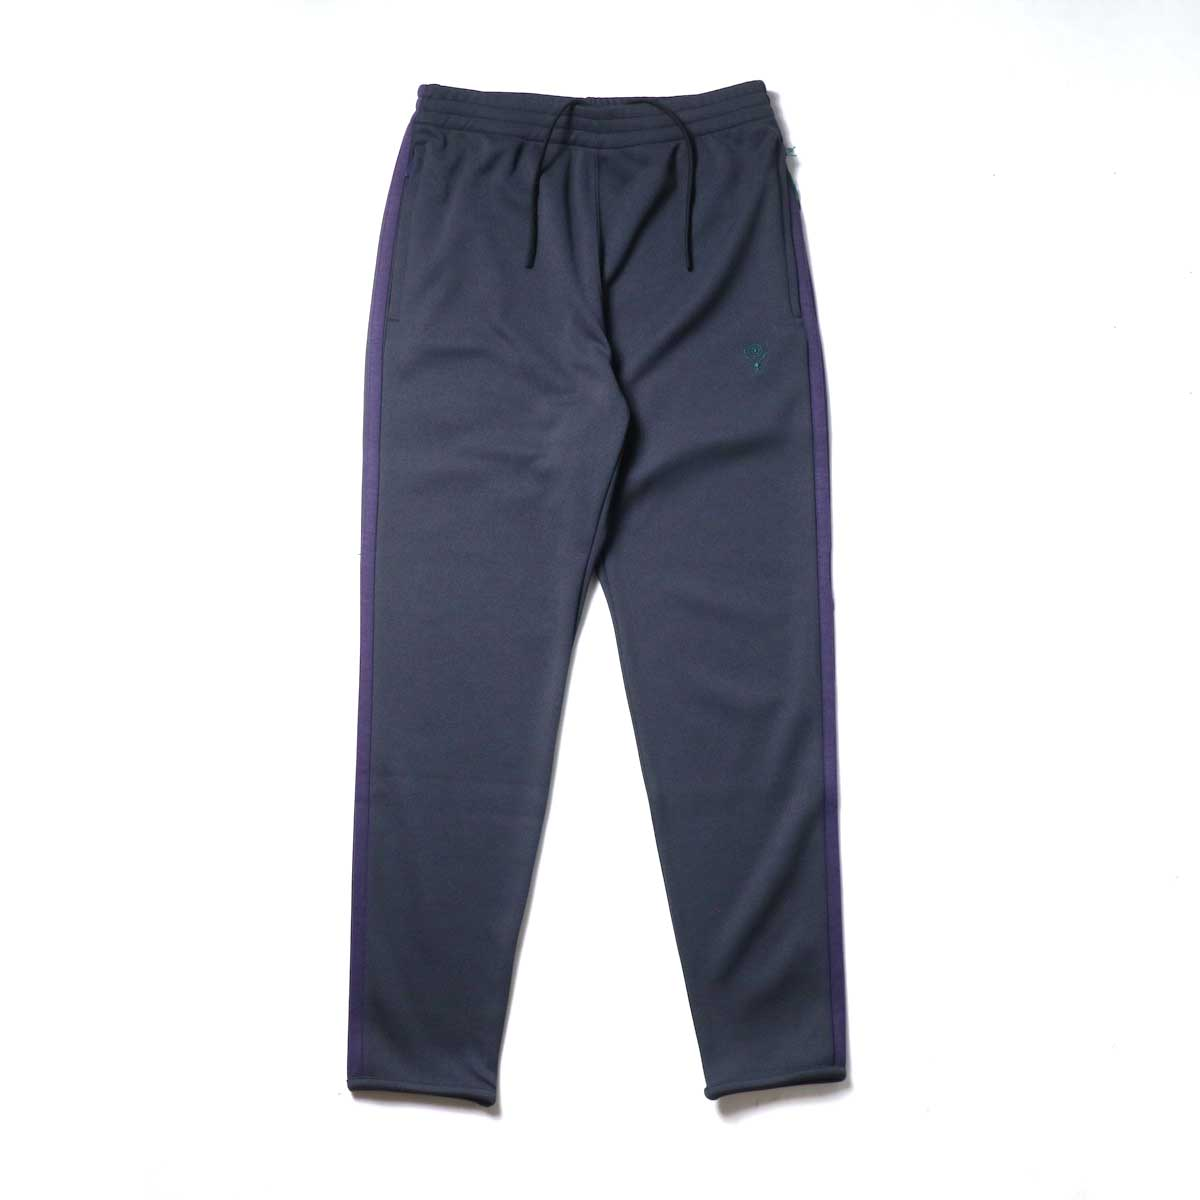 South2 West8 / Trainer Pant -Poly Smooth (Navy)